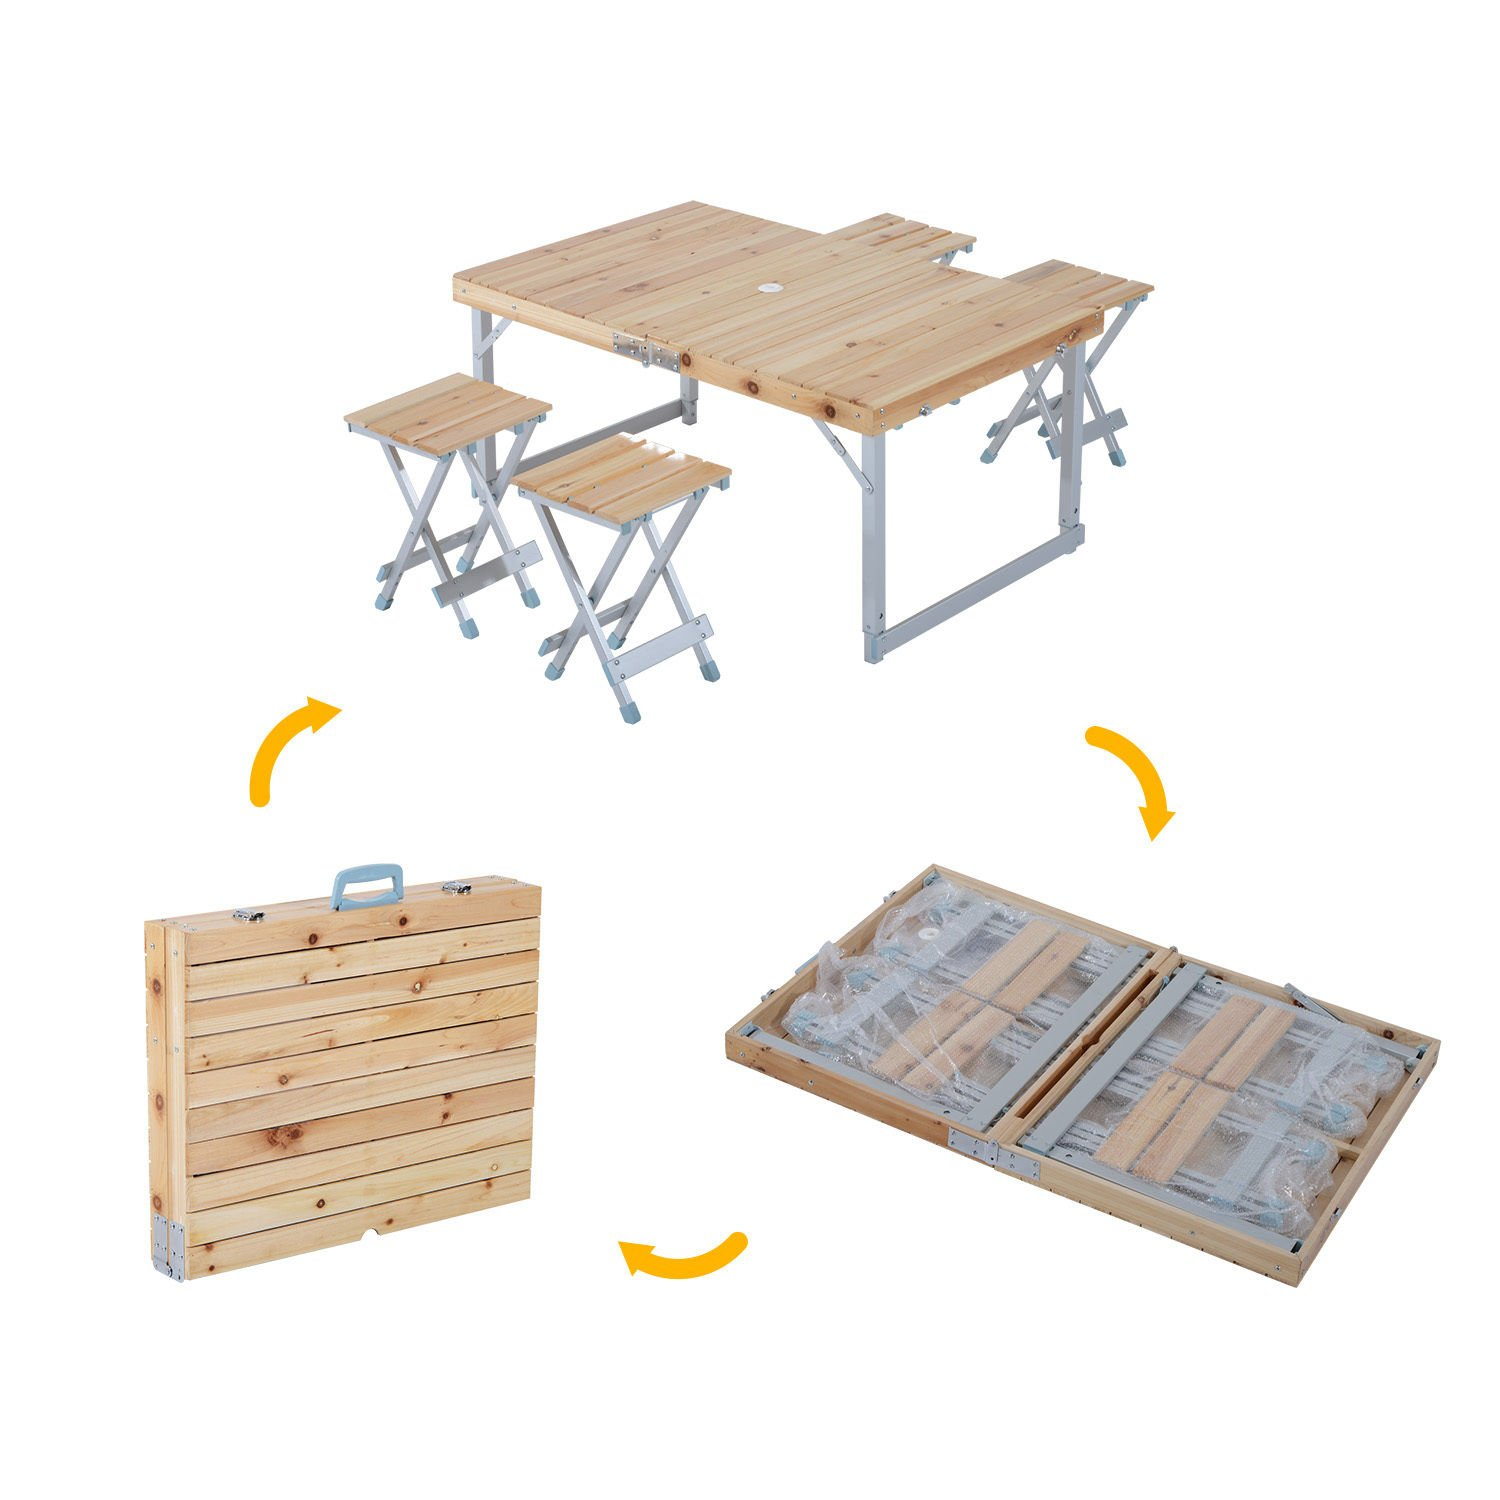 New MTN-G Picnic Chair Table Set Wood Adjustable Outdoor Folding Portable Camping